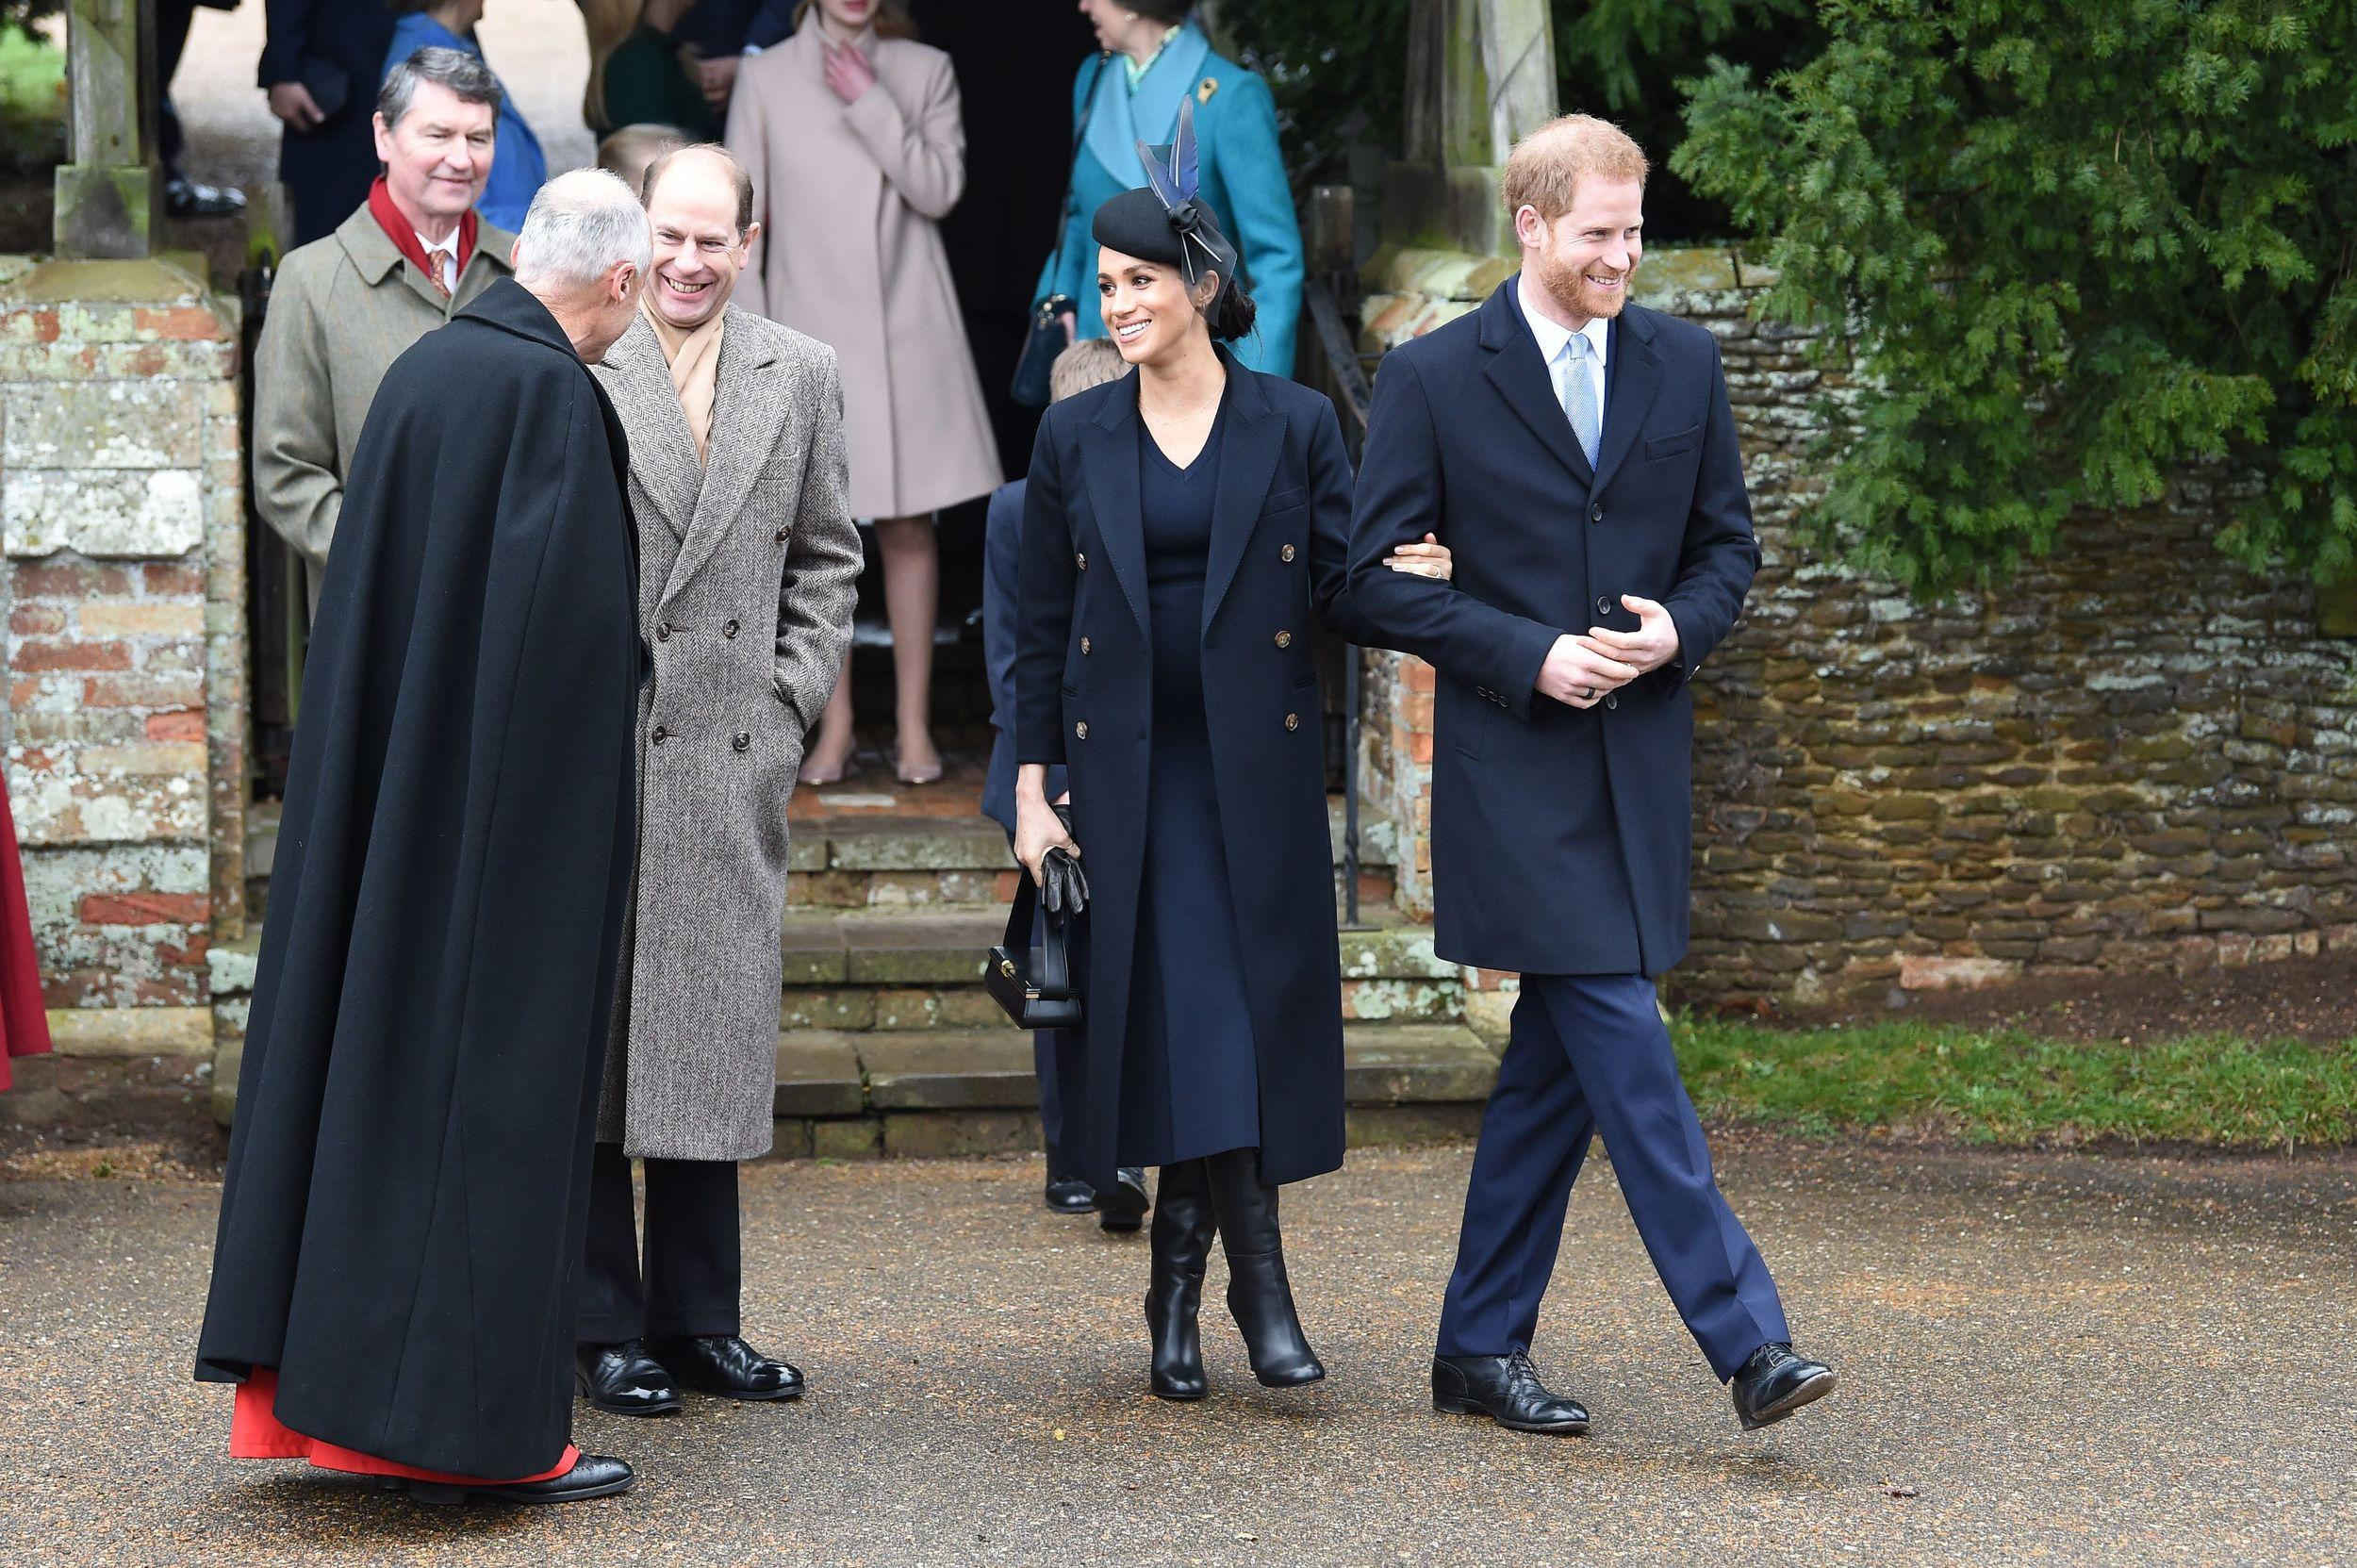 Britain's Prince Edward, Earl of Wessex (L), Meghan, Duchess of Sussex and Britain's Prince Harry, Duke of Sussex depart after the Royal Family's traditional Christmas Day service at St Mary Magdalene Church in Sandringham, Norfolk, eastern England, on December 25, 2018. (Photo by Paul ELLIS / AFP)        (Photo credit should read PAUL ELLIS/AFP/Getty Images)